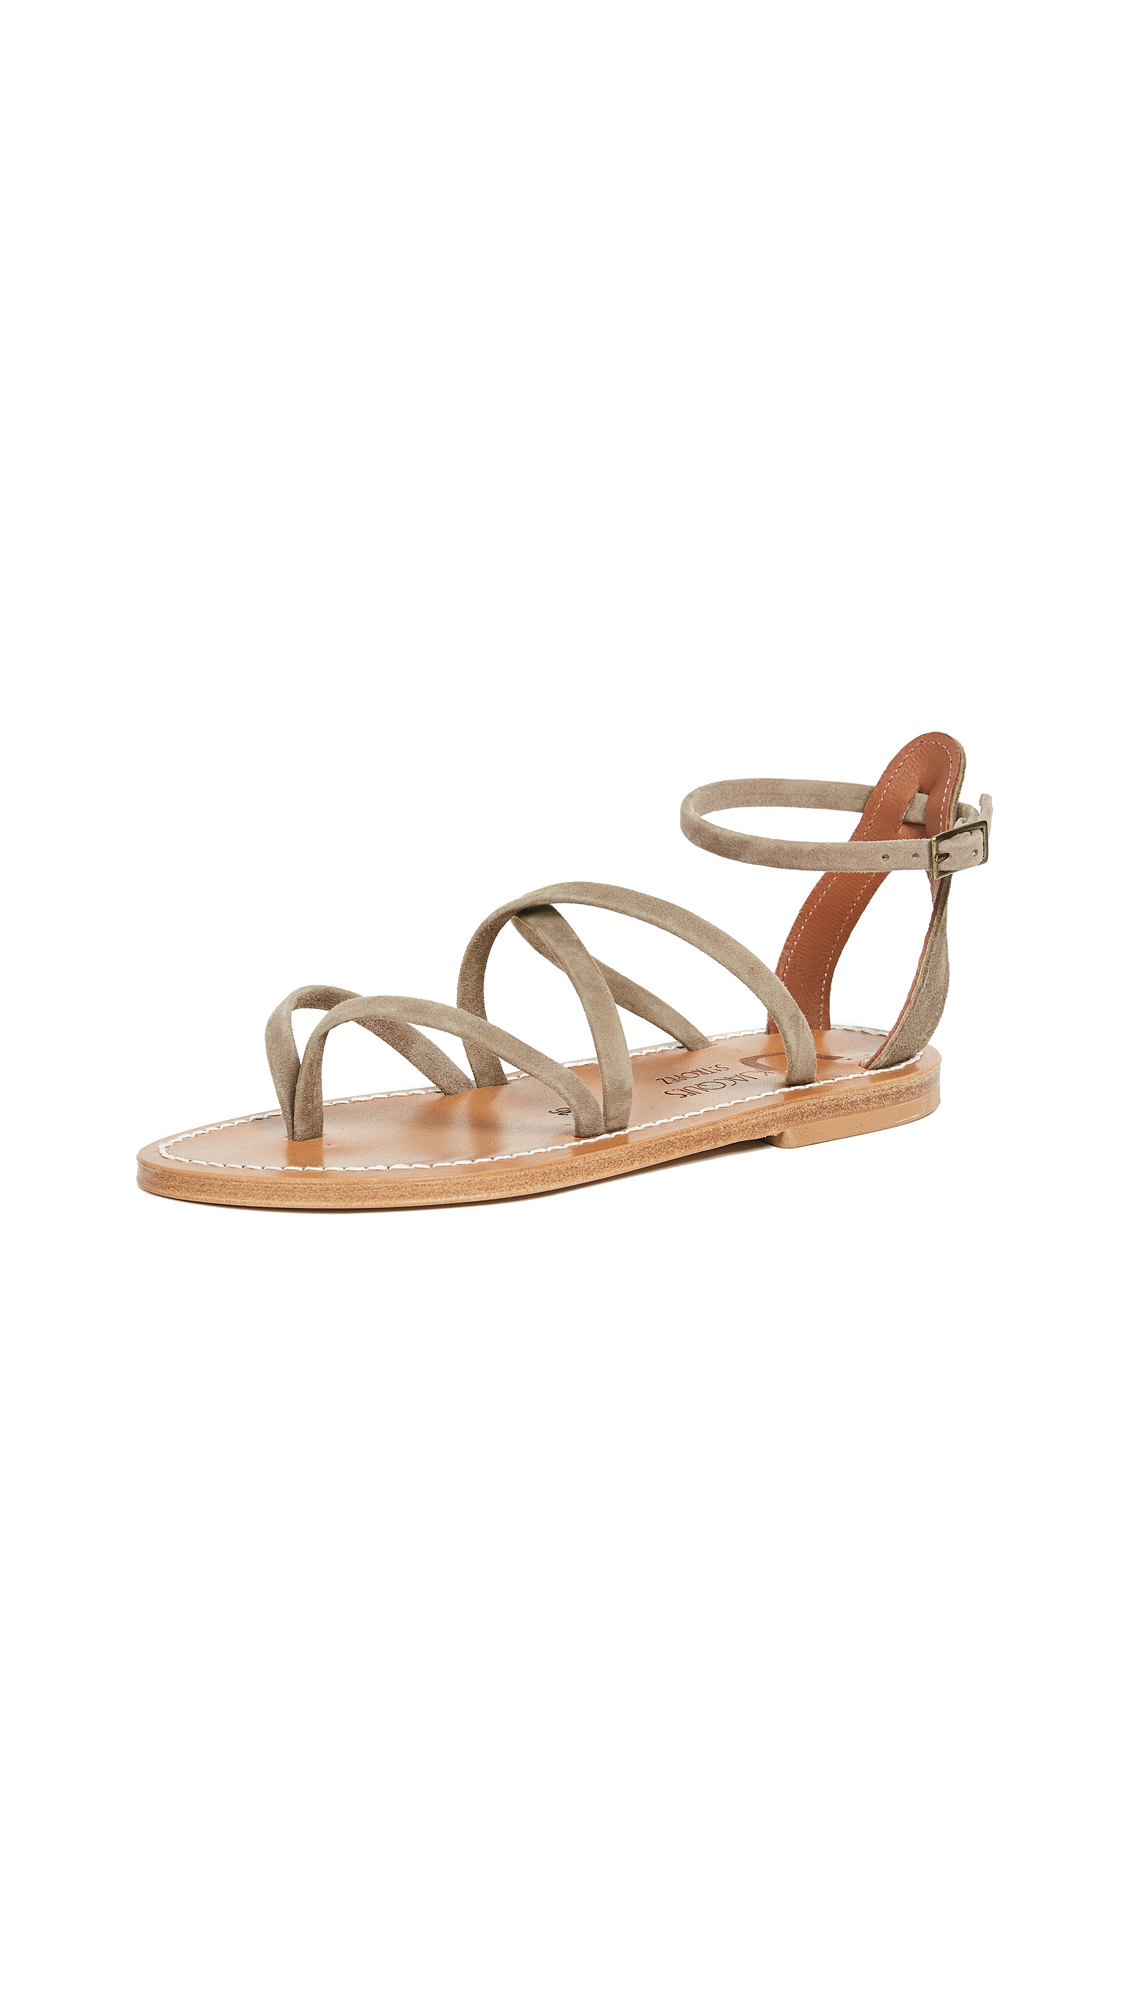 K. Jacques Epicure Sandals - Velours Fango